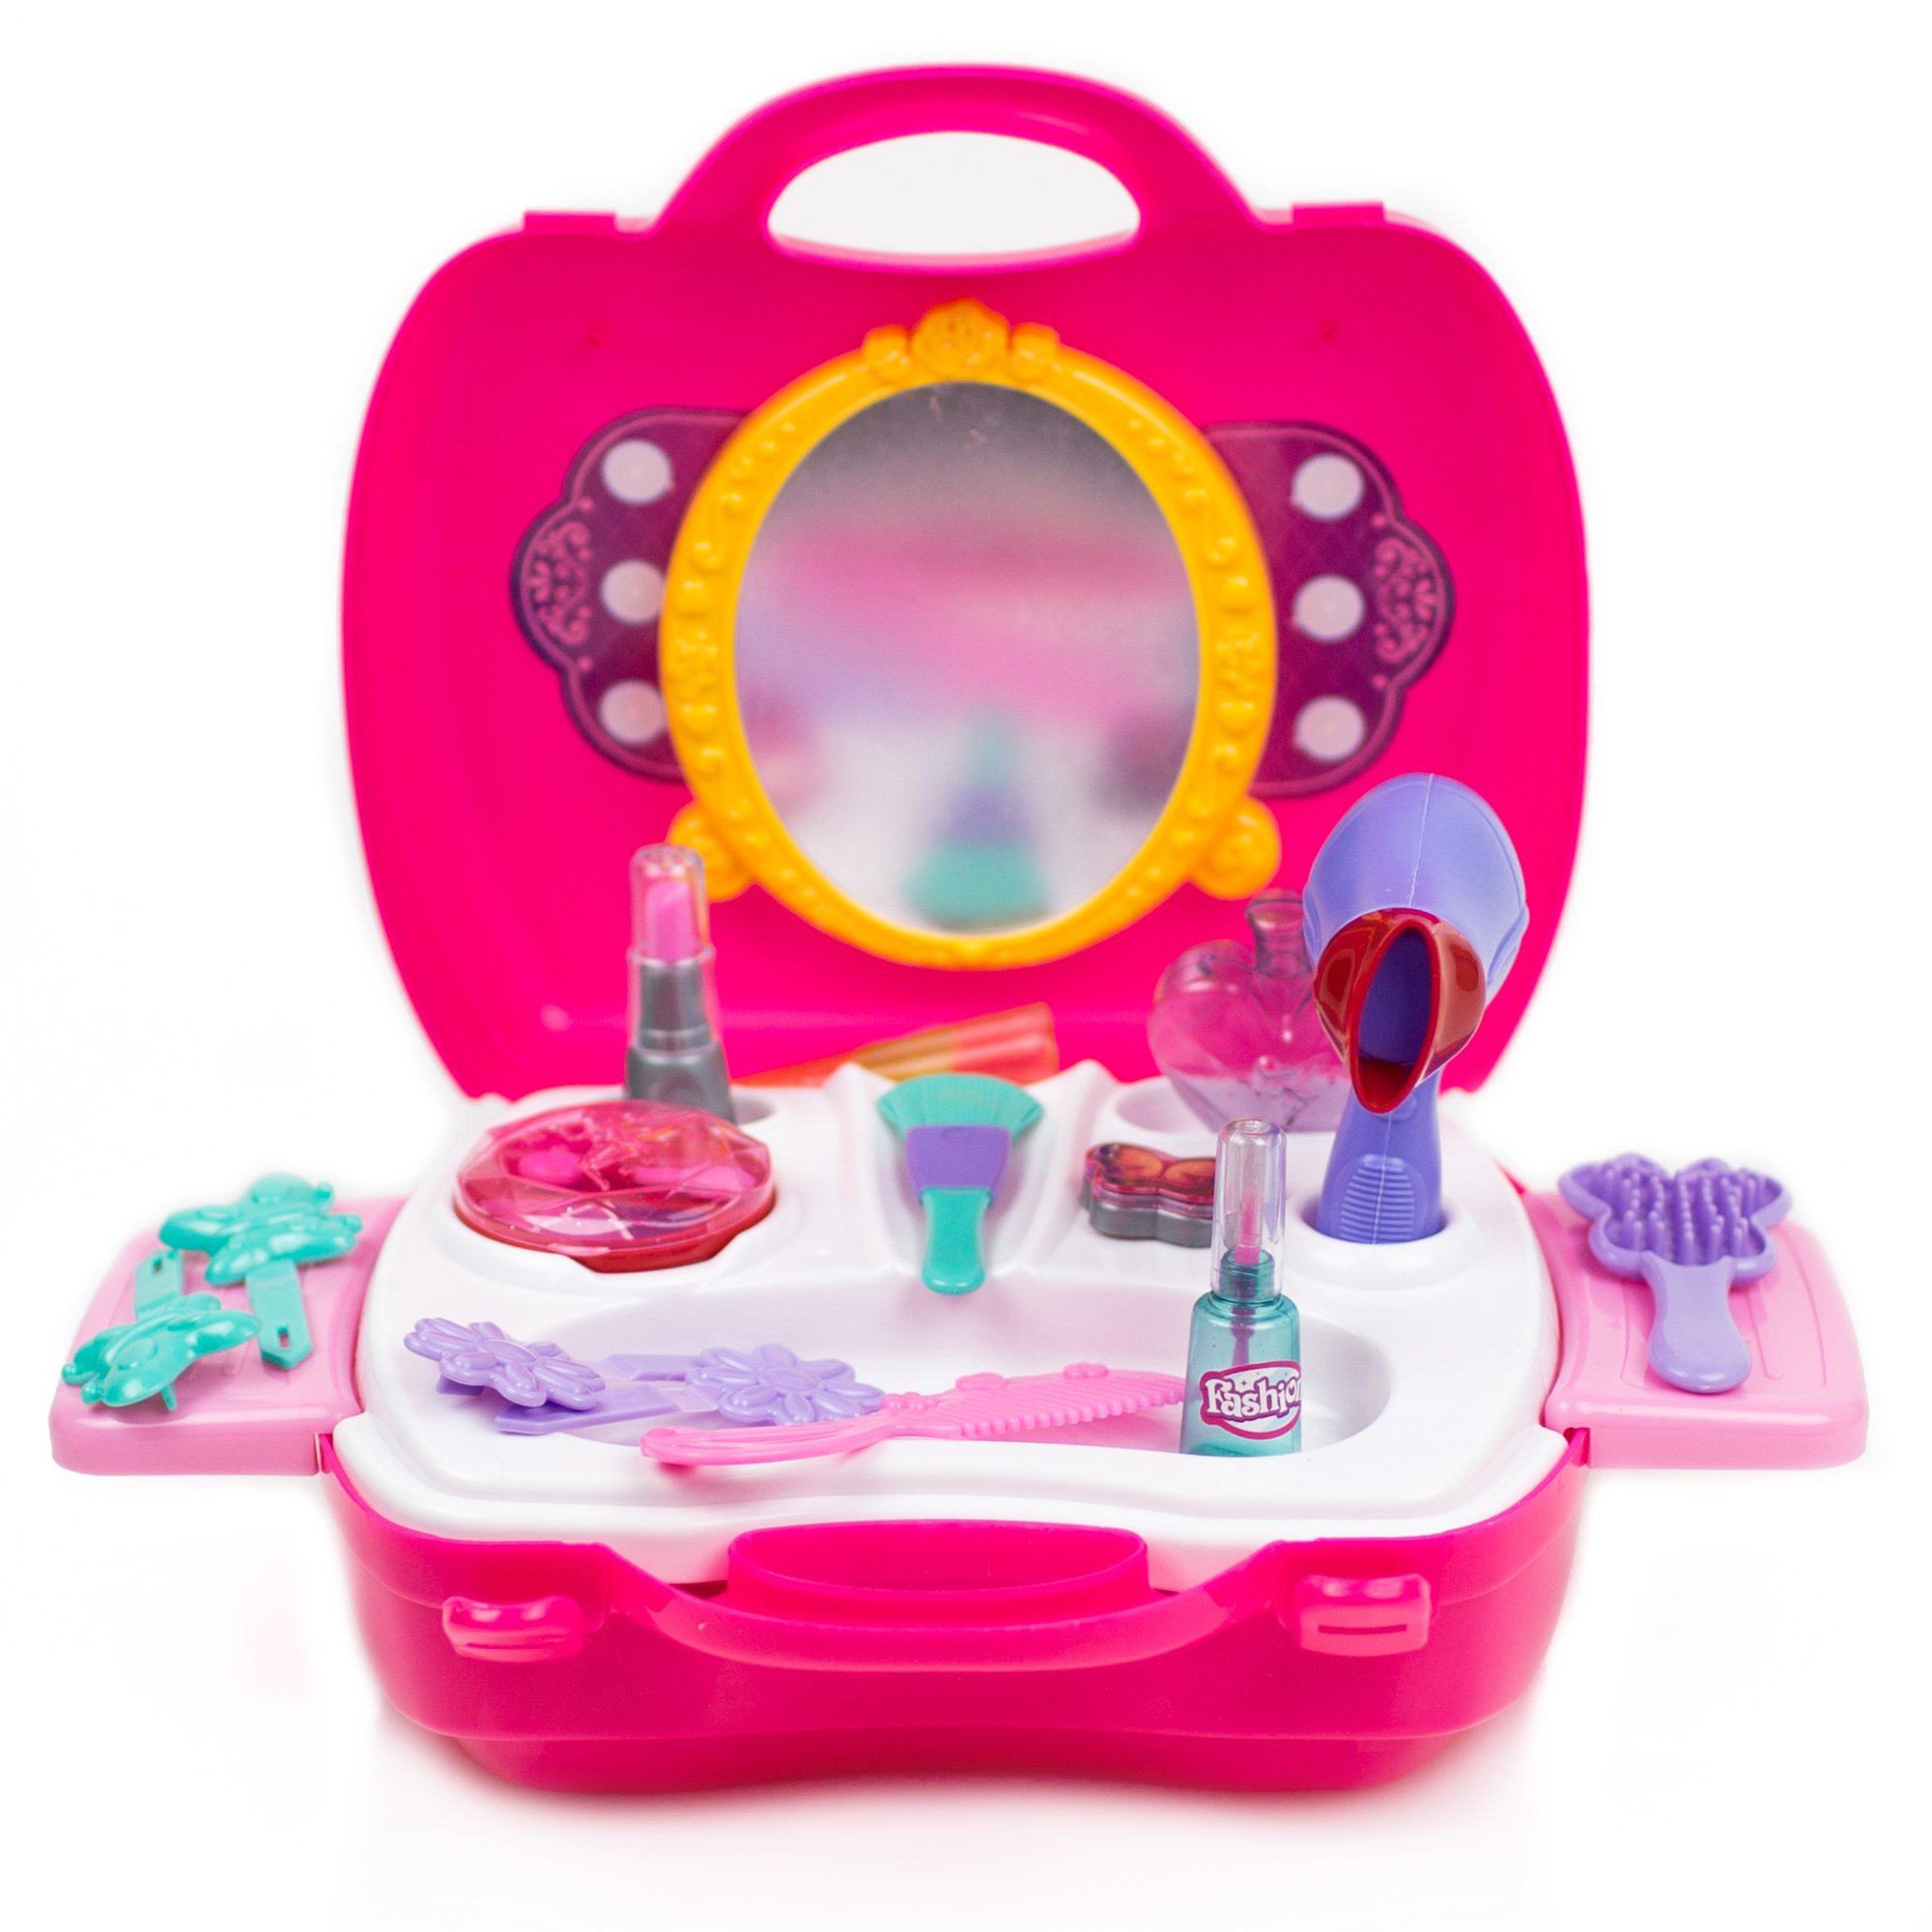 Toysery Pretend Play Cosmetic and Makeup Toy Set Kit for Little Girls & Kids Include 21 Pieces Beauty Salon Toys